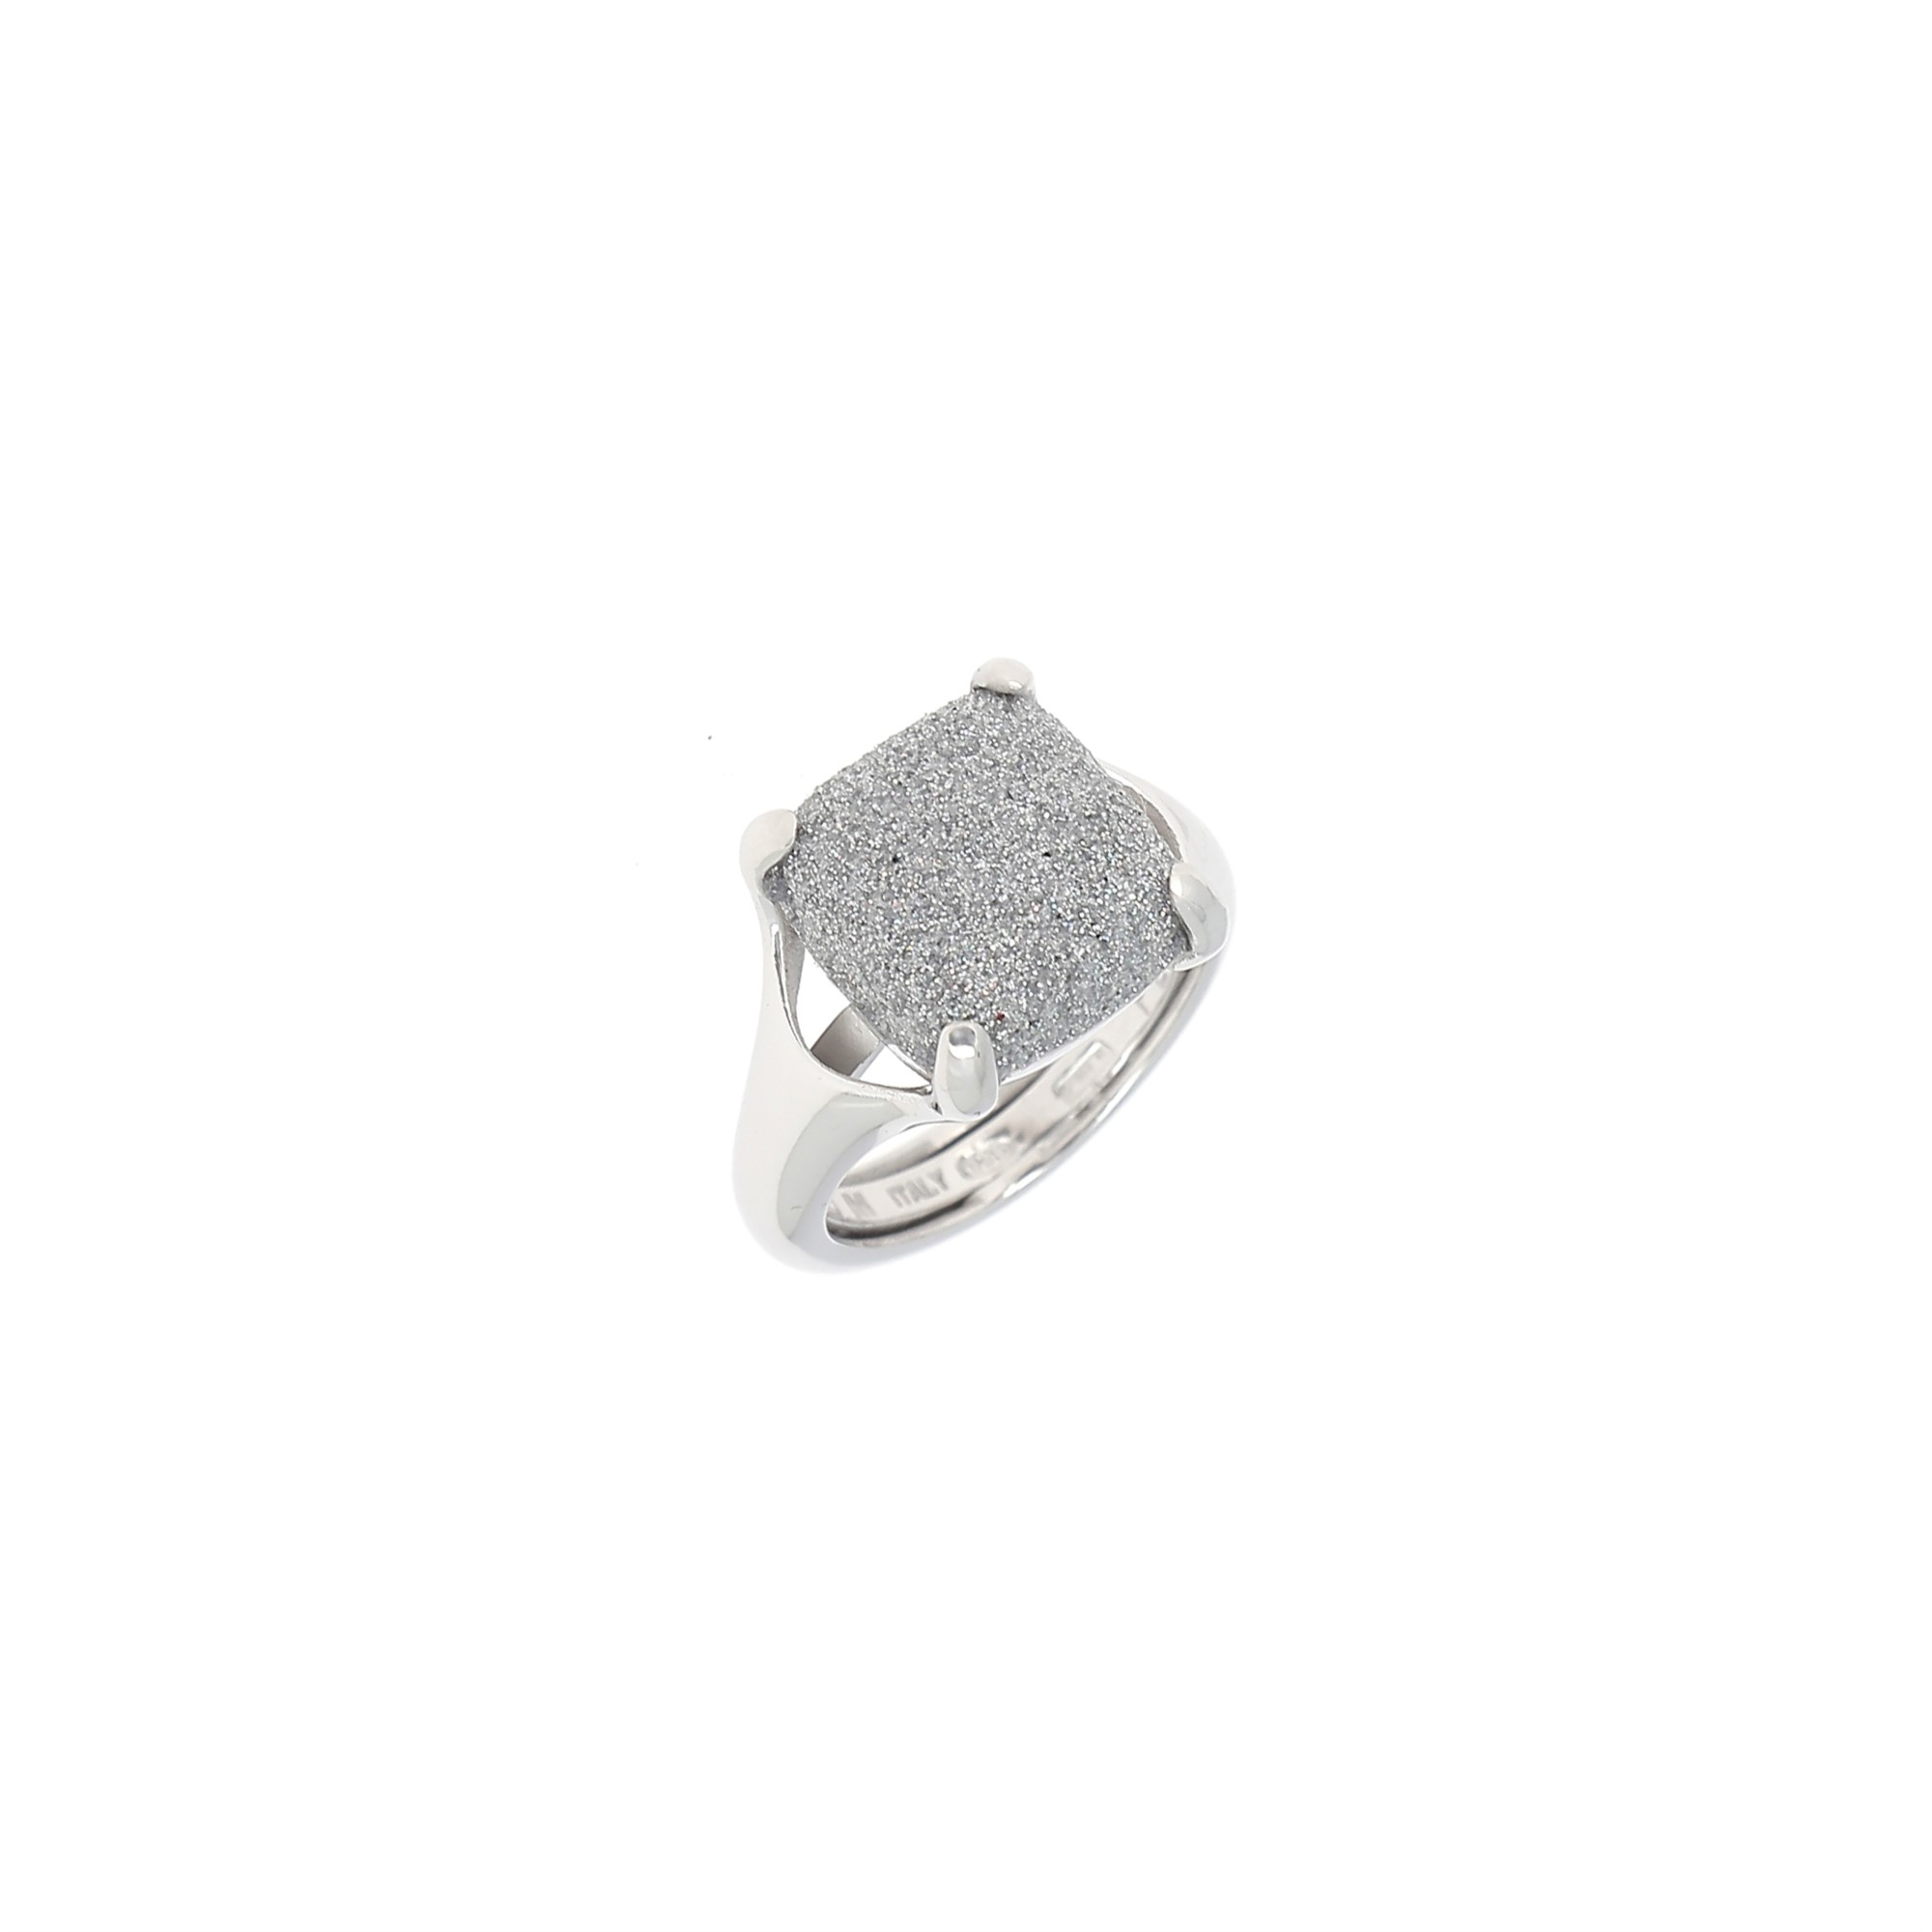 Pesavento  Sterling Silver  Gray Polvere Silver Rings without Stones WPLVA1249M